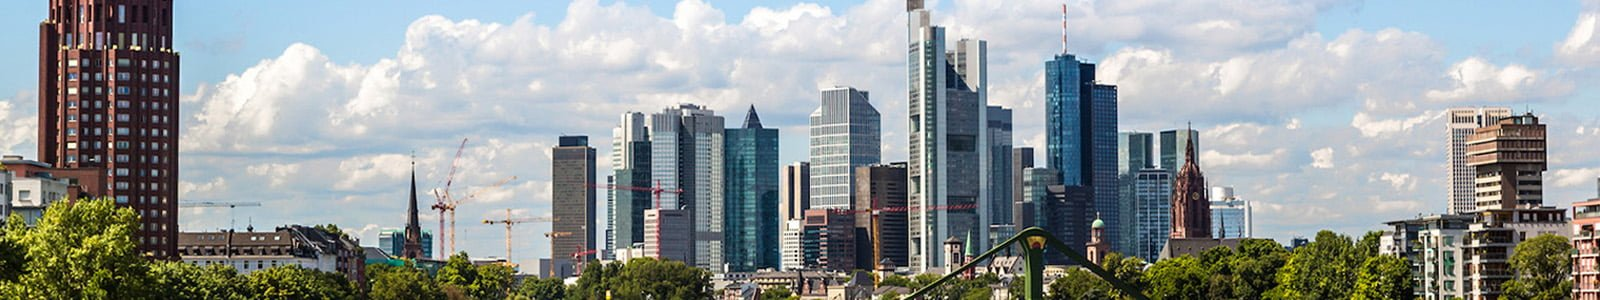 News cometis AG, Frankfurt am Main